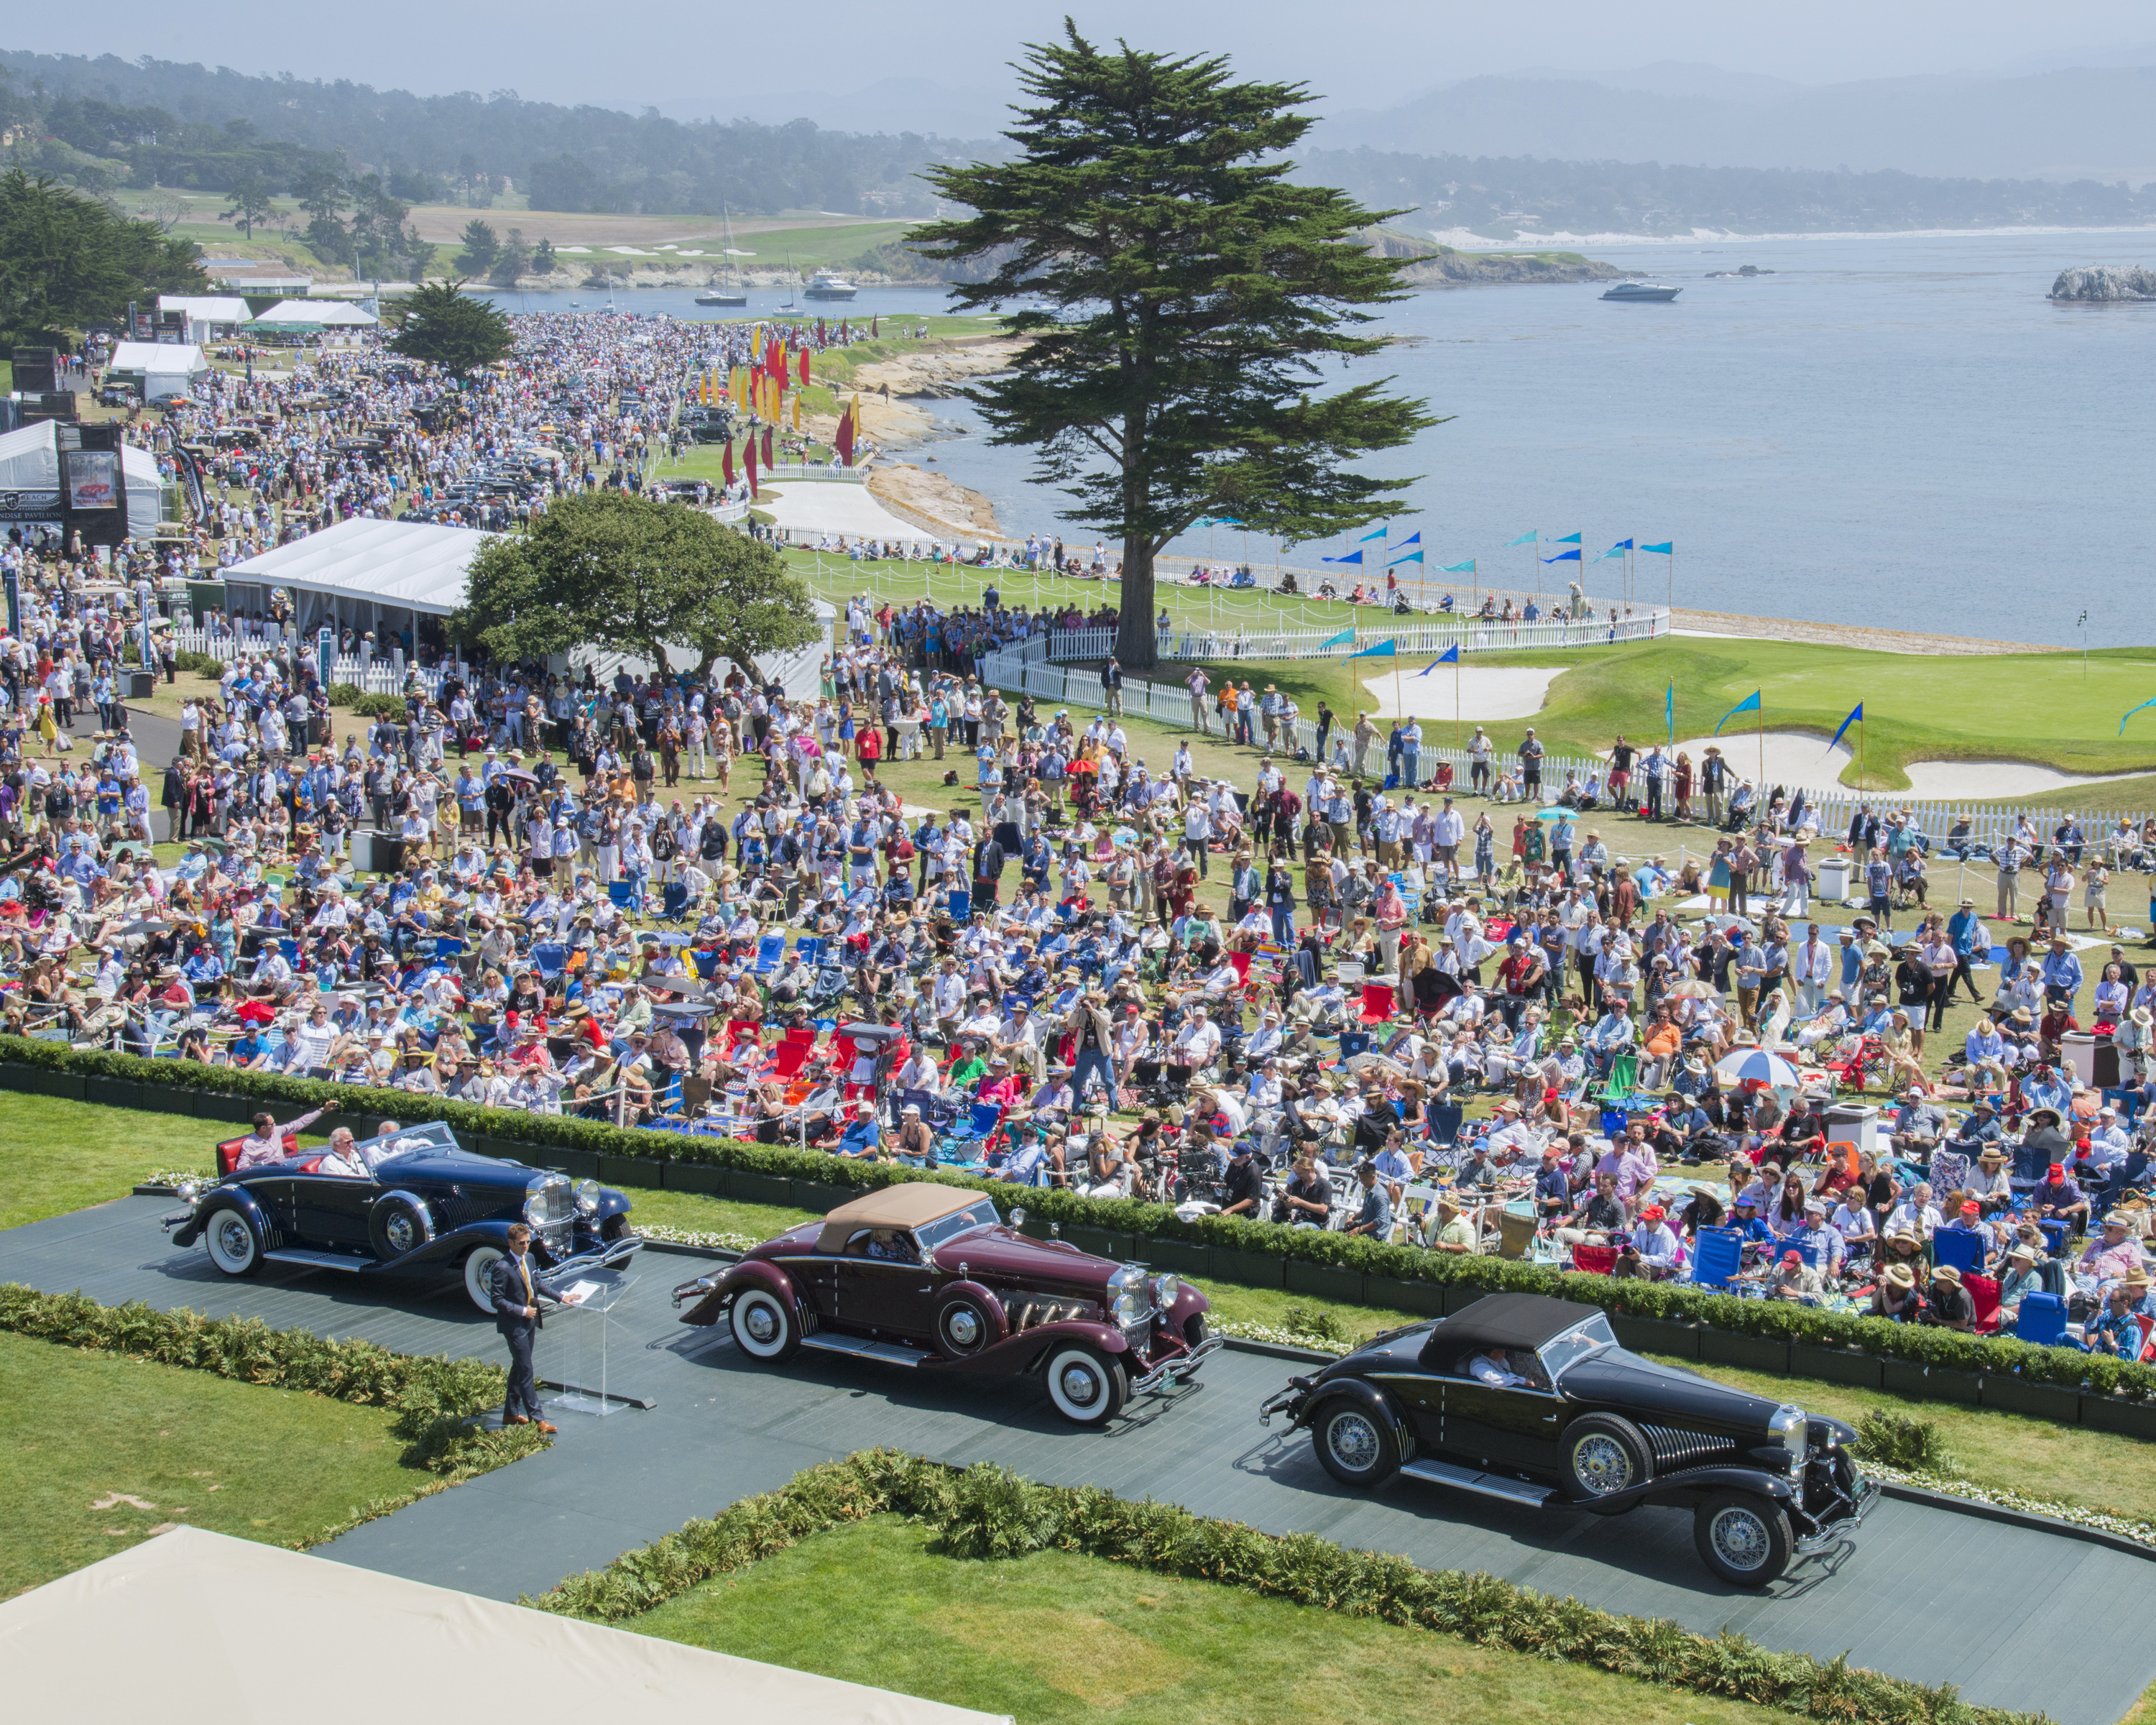 5 Tips for Your First Time at the Pebble Beach Concours d'Elegance